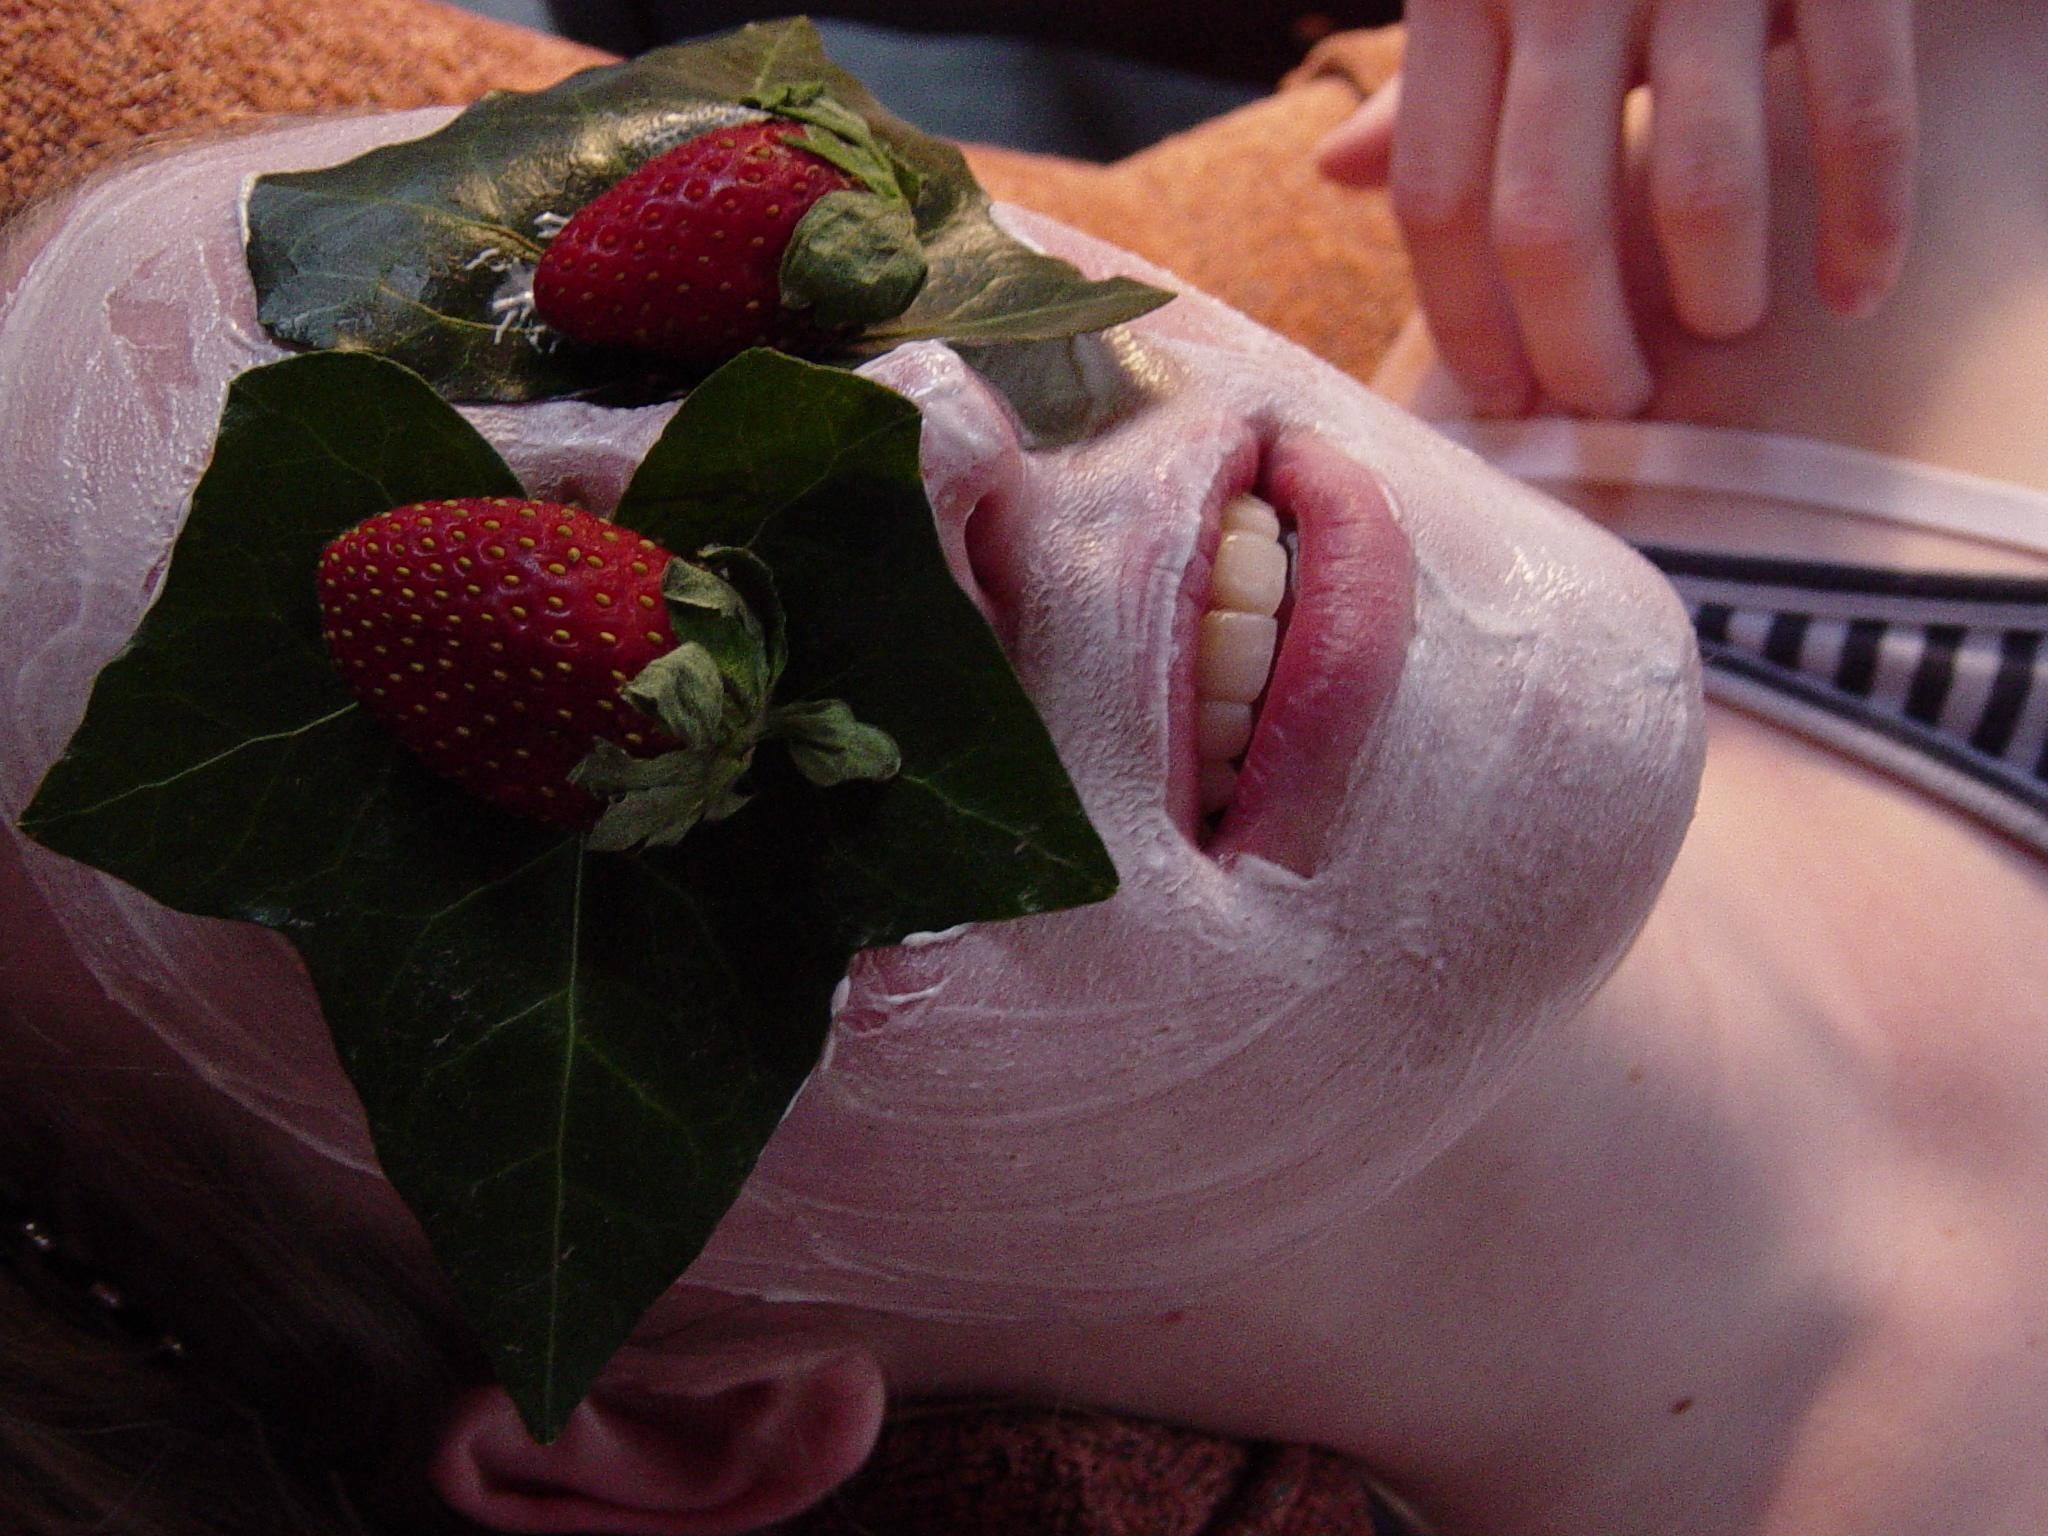 How to Make Normal Skin Winter Herbal Strawberry Mask